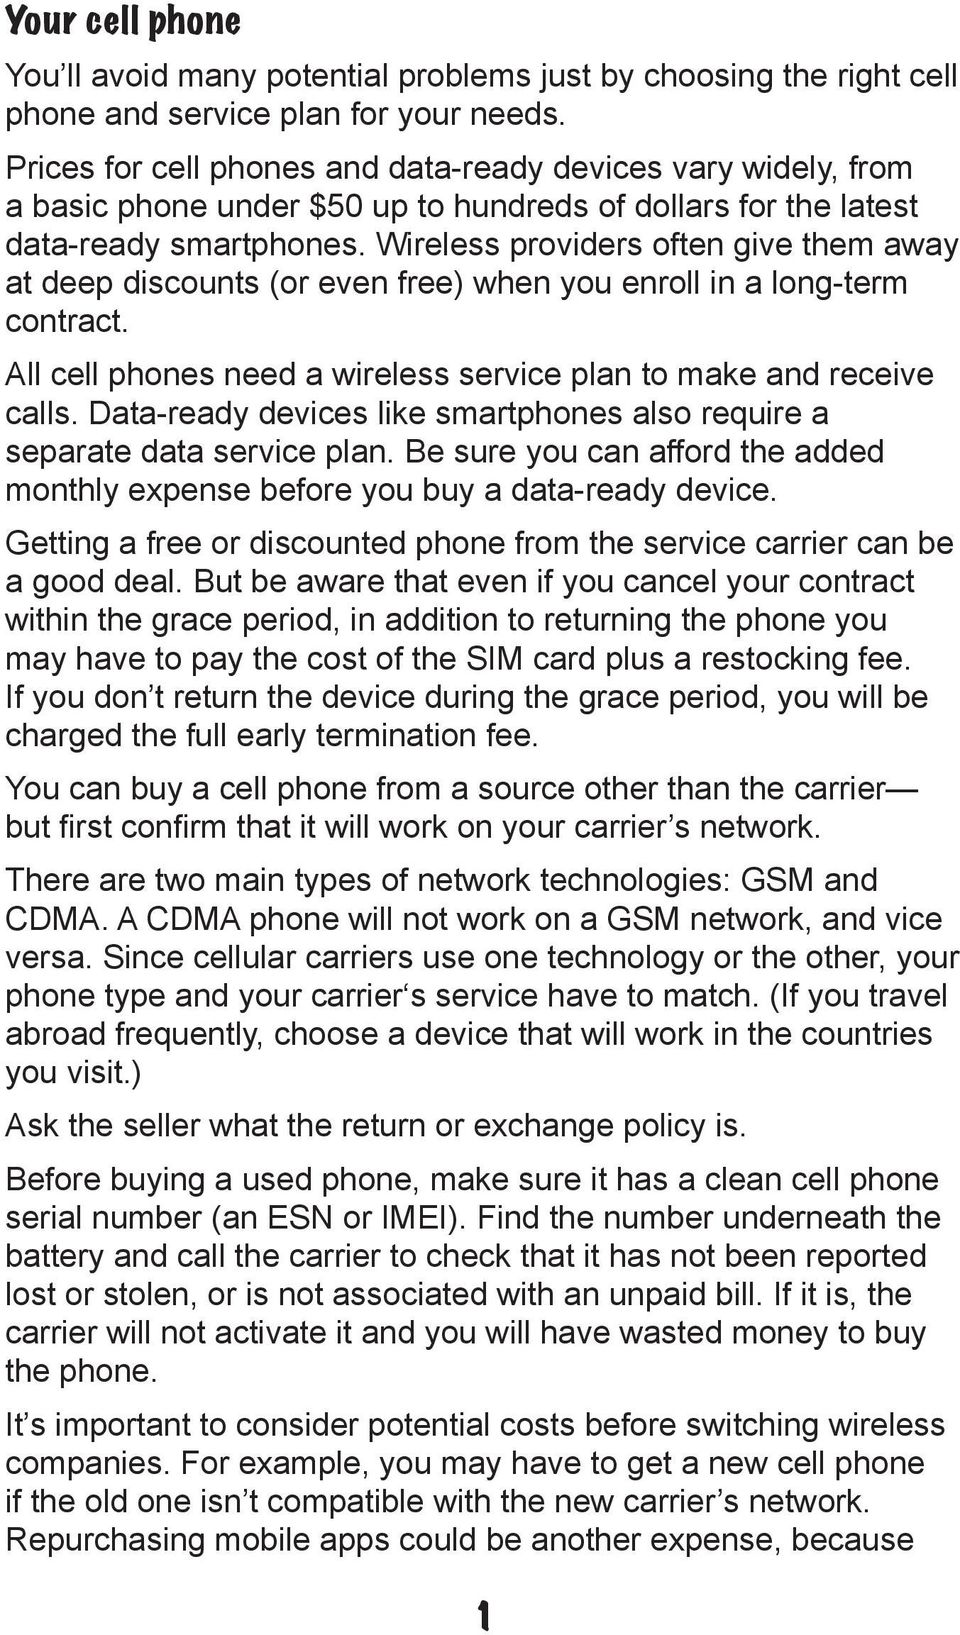 Wireless providers often give them away at deep discounts (or even free) when you enroll in a long-term contract. All cell phones need a wireless service plan to make and receive calls.